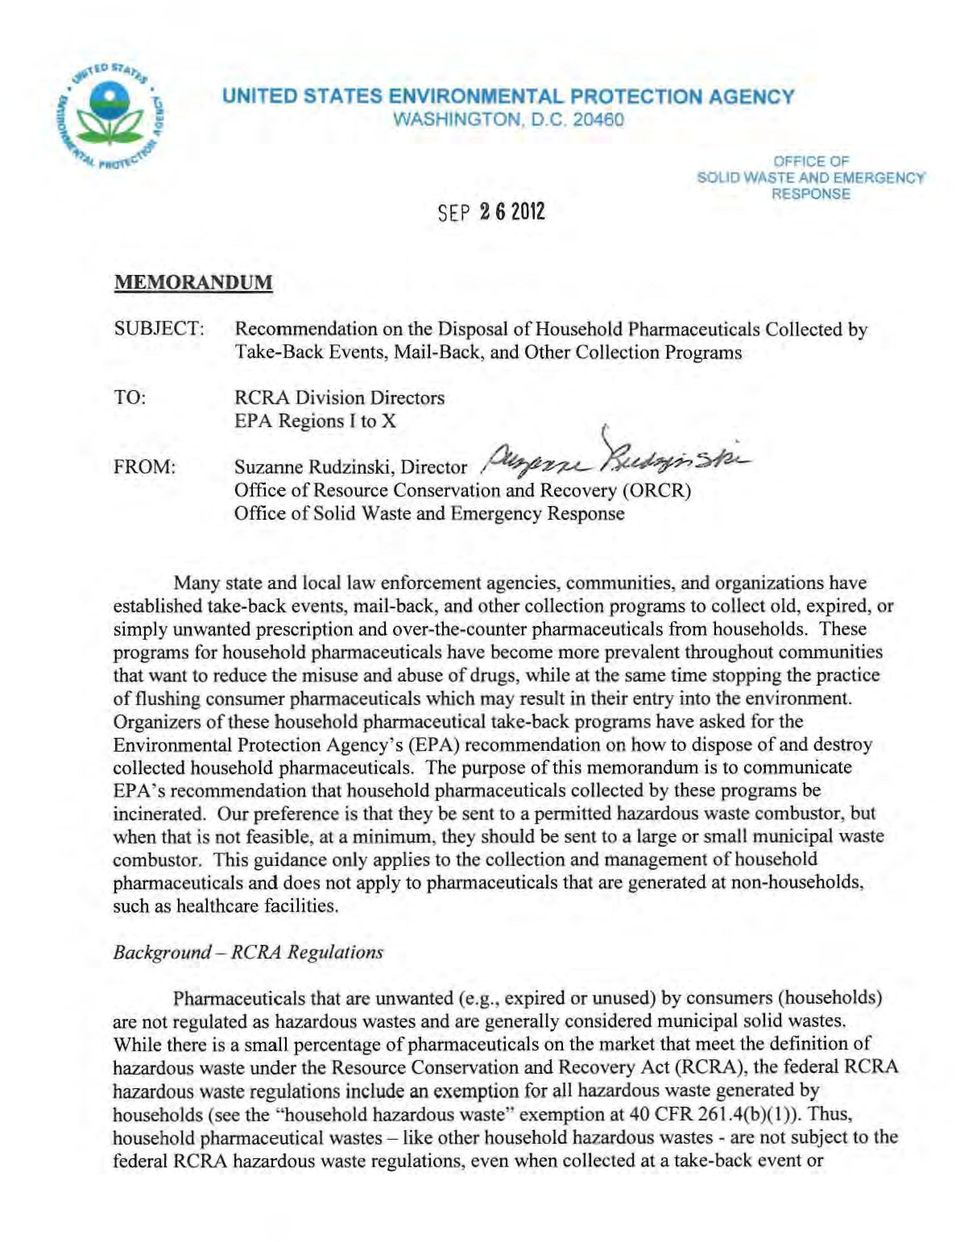 20460 SEP 2 6 2012 OFFICE OF SOID WASTE AND EMERGENCY RESPONSE MEMORANDUM SUBJE: TO: FROM: Recommendation on the Dipoal of Houehold Pharmaceutical Collected by Take-Back Event, Mail-Back, and Other